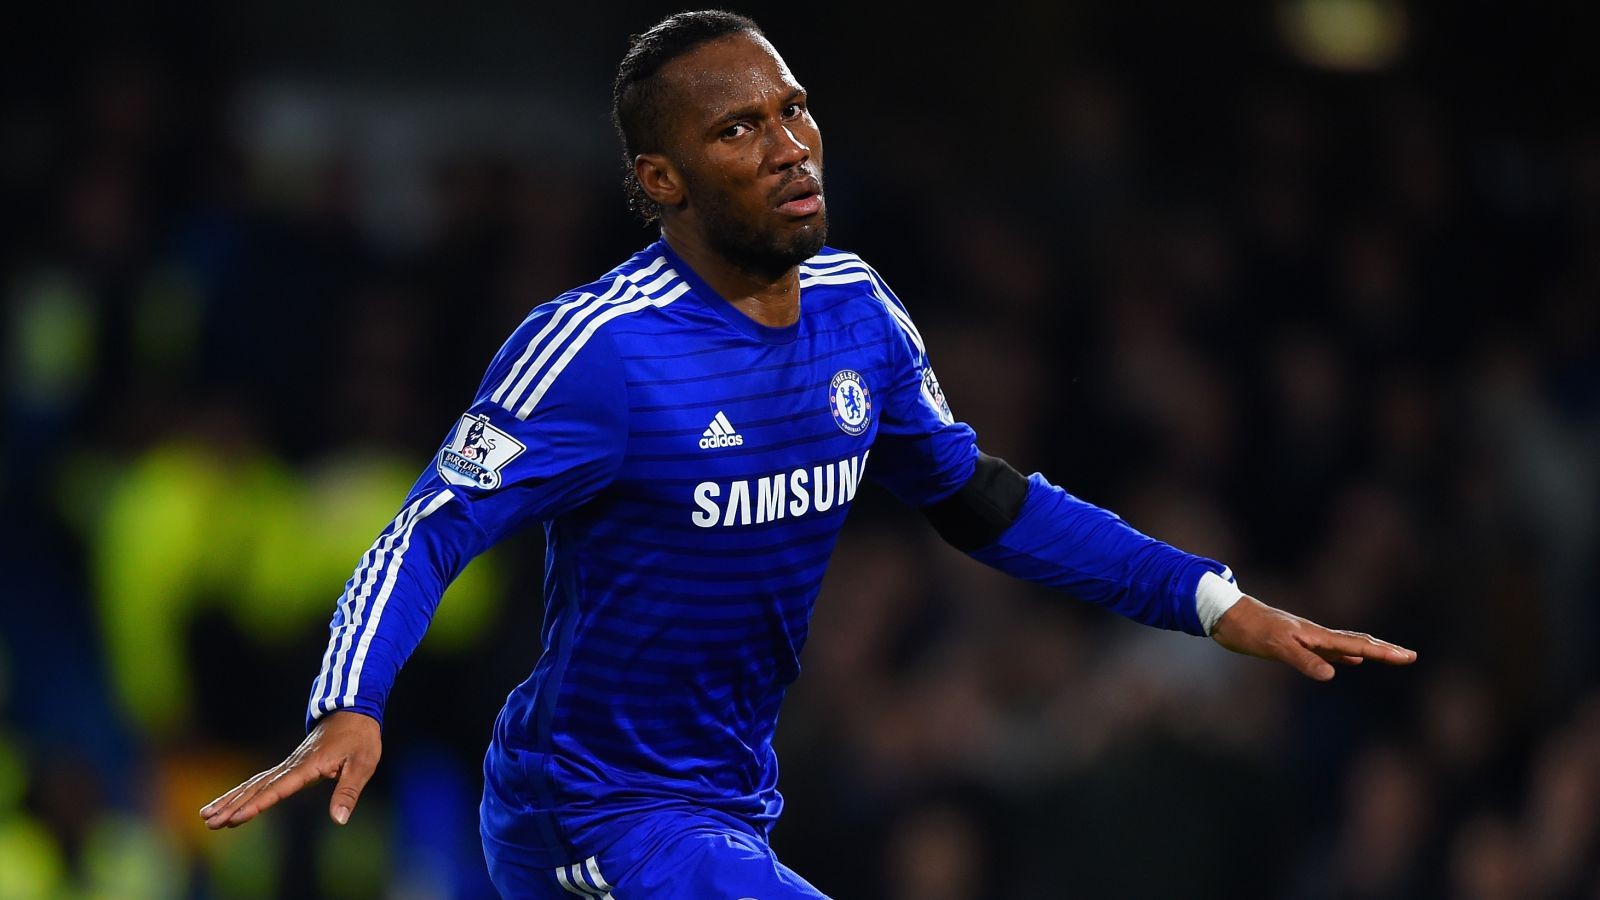 Drogba Signed again for Chelsea